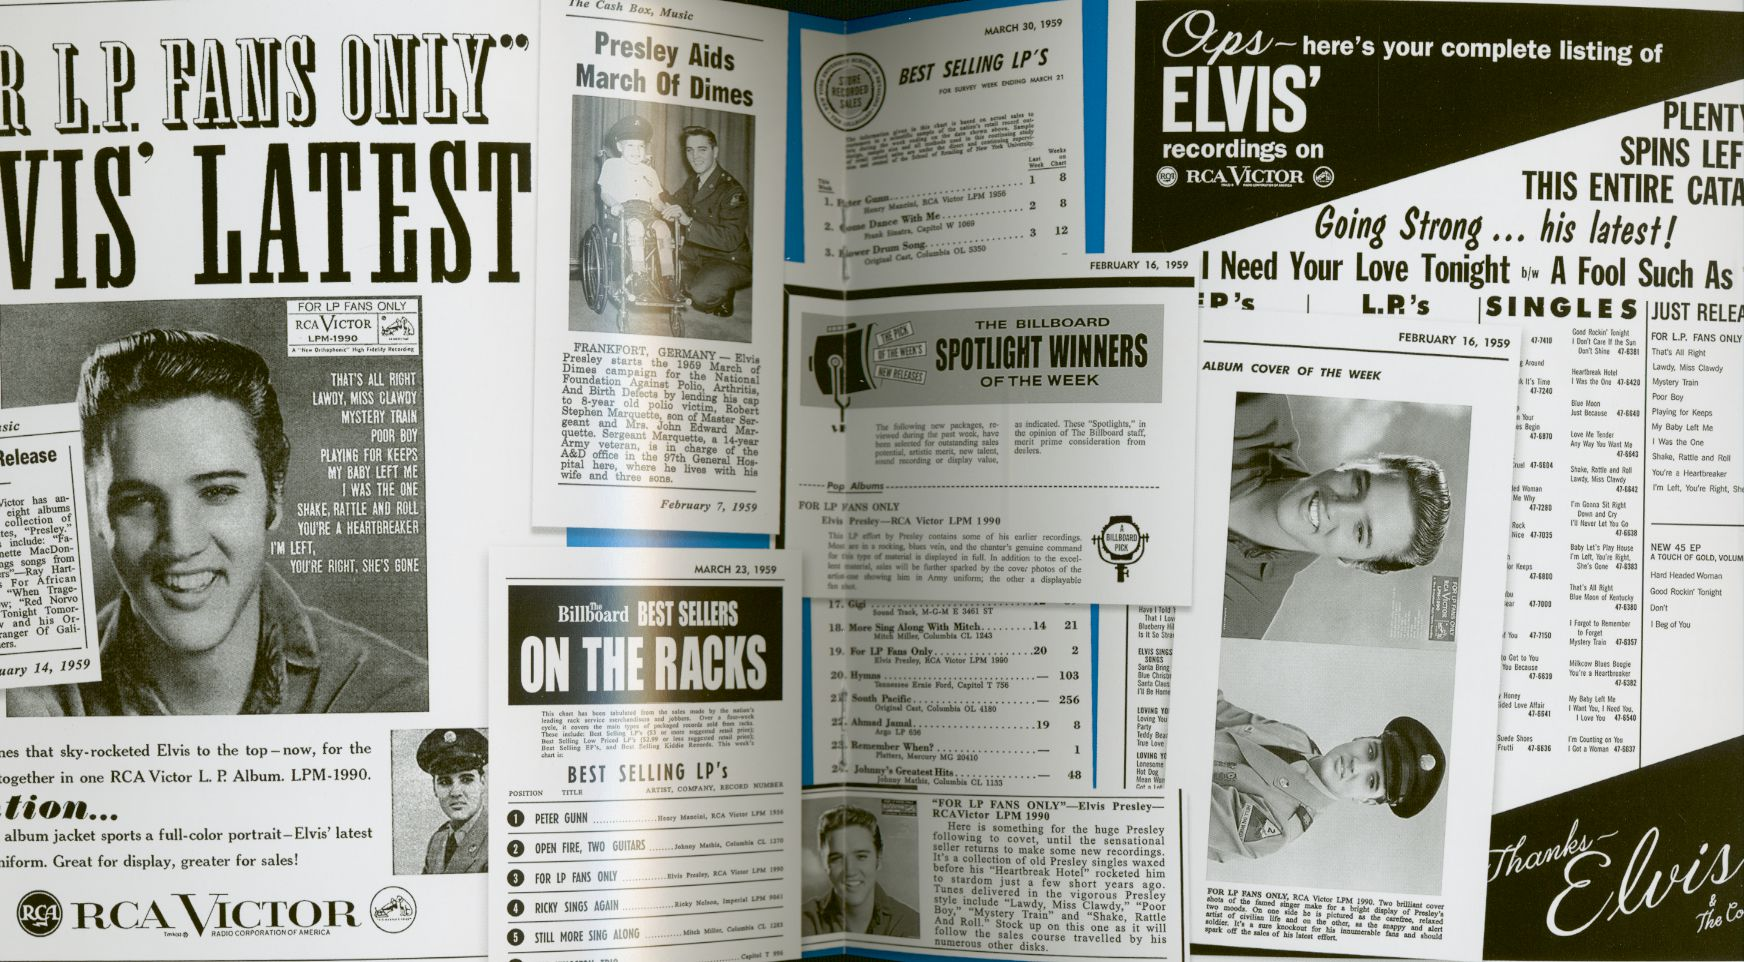 Elvis Presley For LP Fans Only (2-CD) 7inch Deluxe Edition